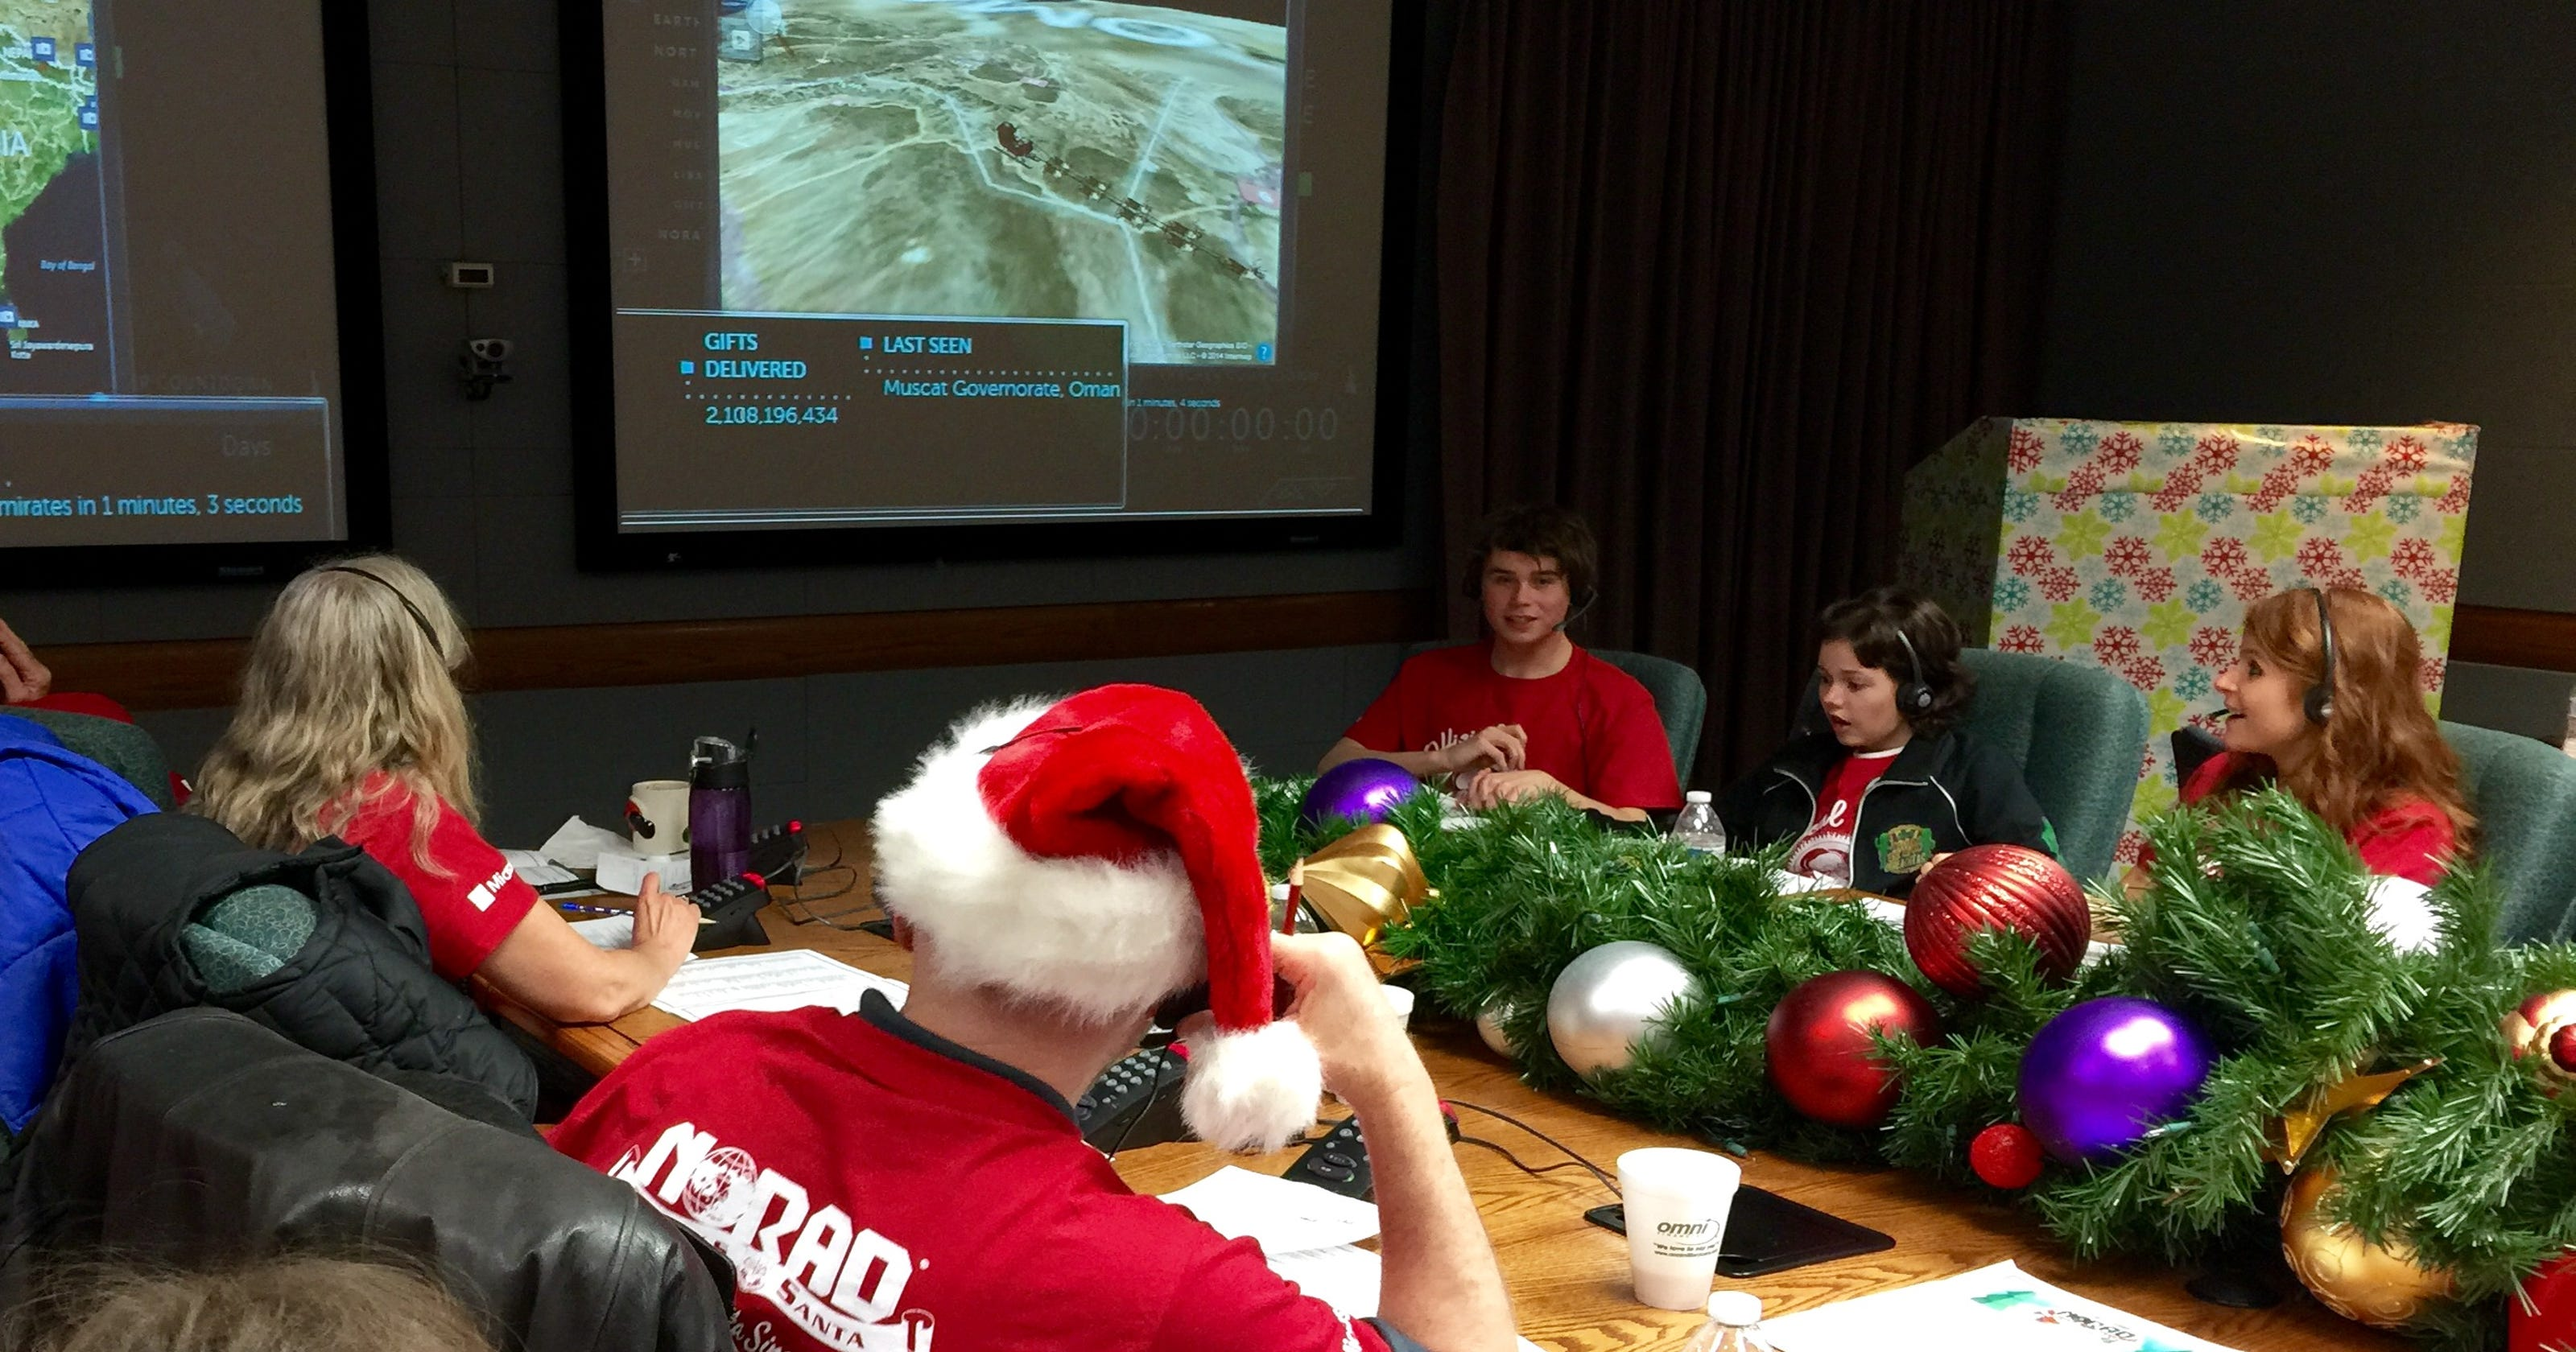 Santa\'s on his way! NORAD\'s tracking his sleigh